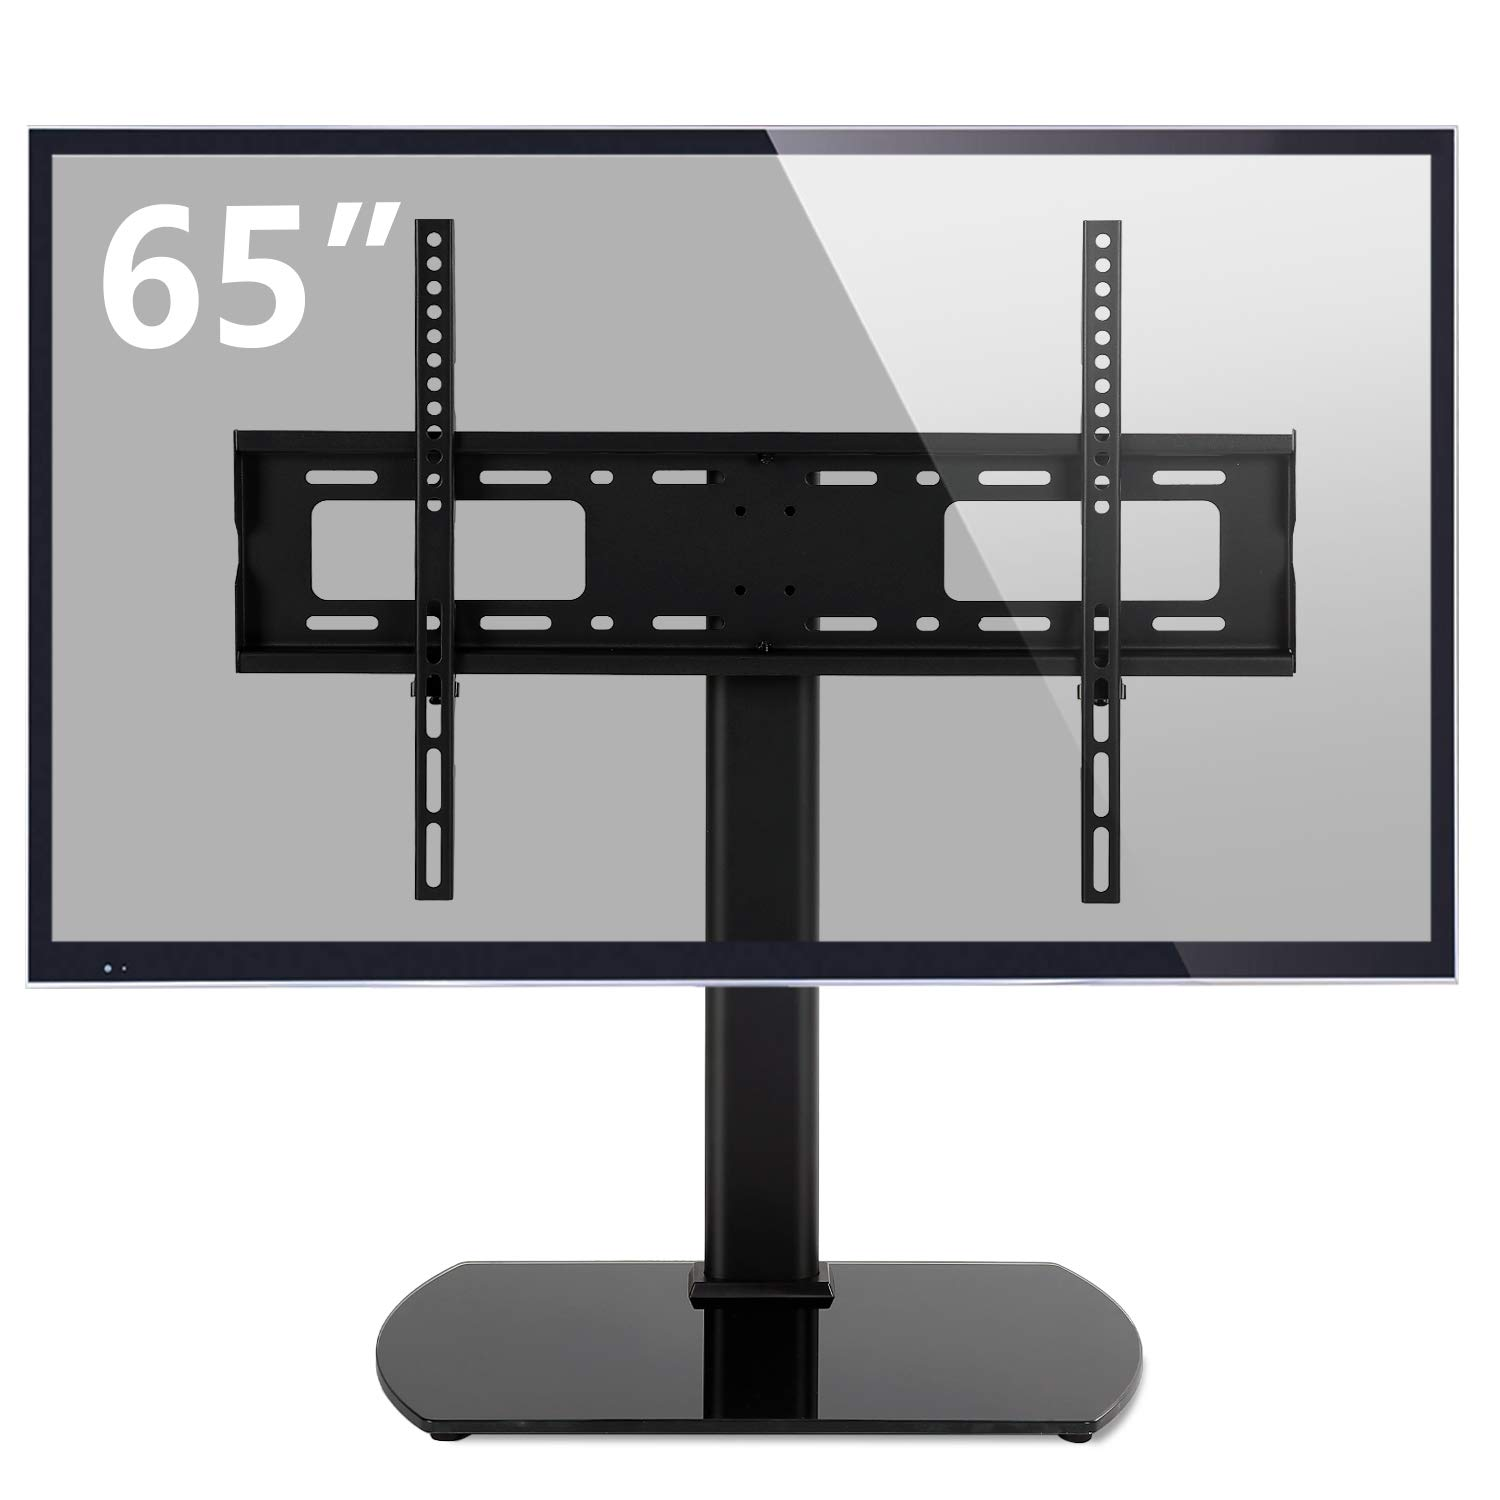 Rfiver Universal Swivel Tabletop TV Stand with Mount for 32 37 40 42 43 47 50 55 60 65 inch LED,LCD and Plasma Flat Screen TVs with Height Adjustment VESA 600x400mm, UT2001 by Rfiver